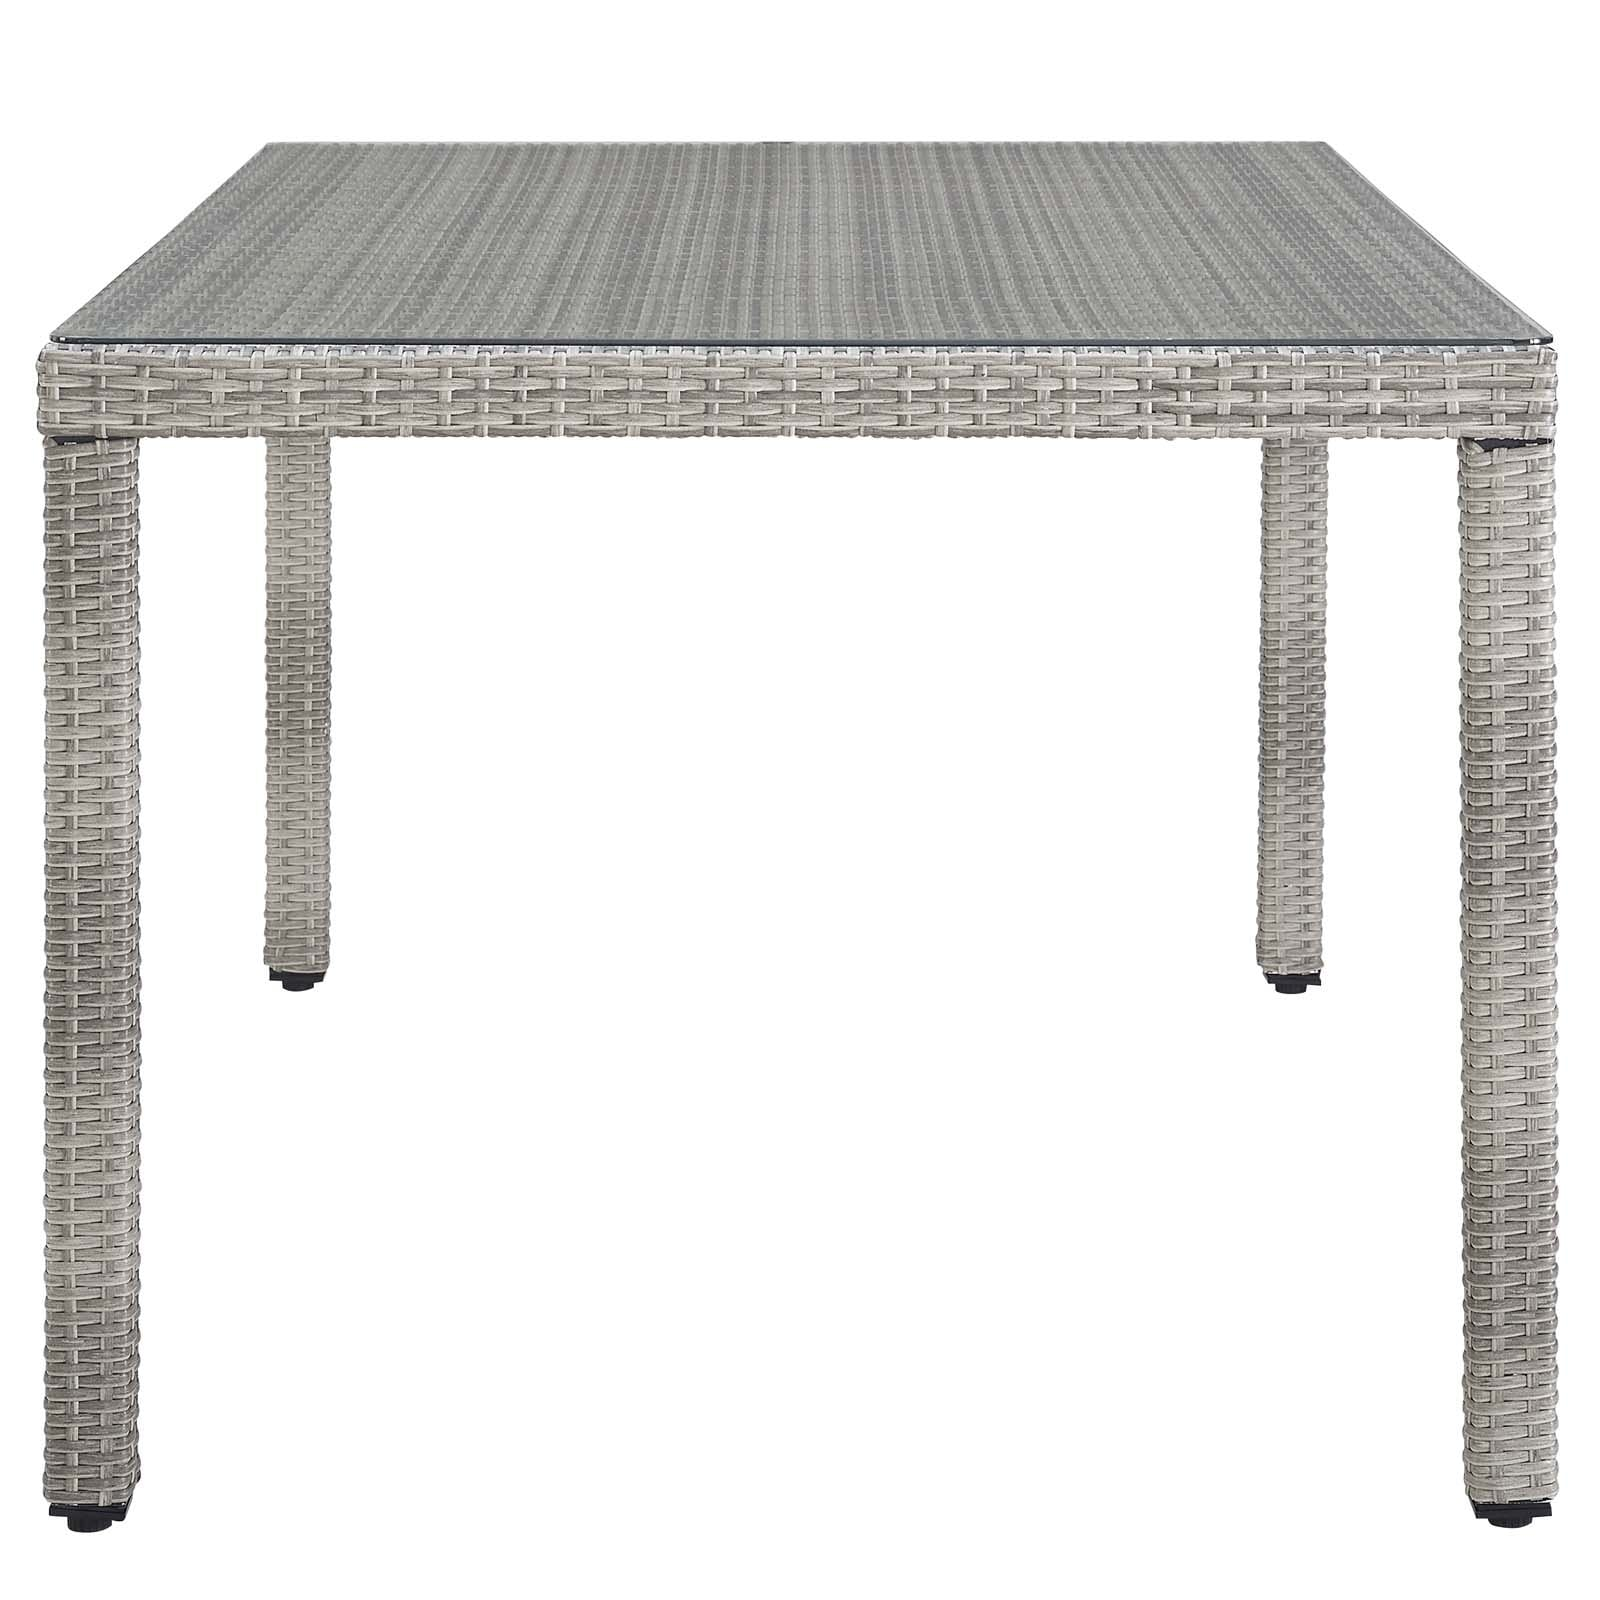 Aura 68 Wicker Rattan Dining Table Grey